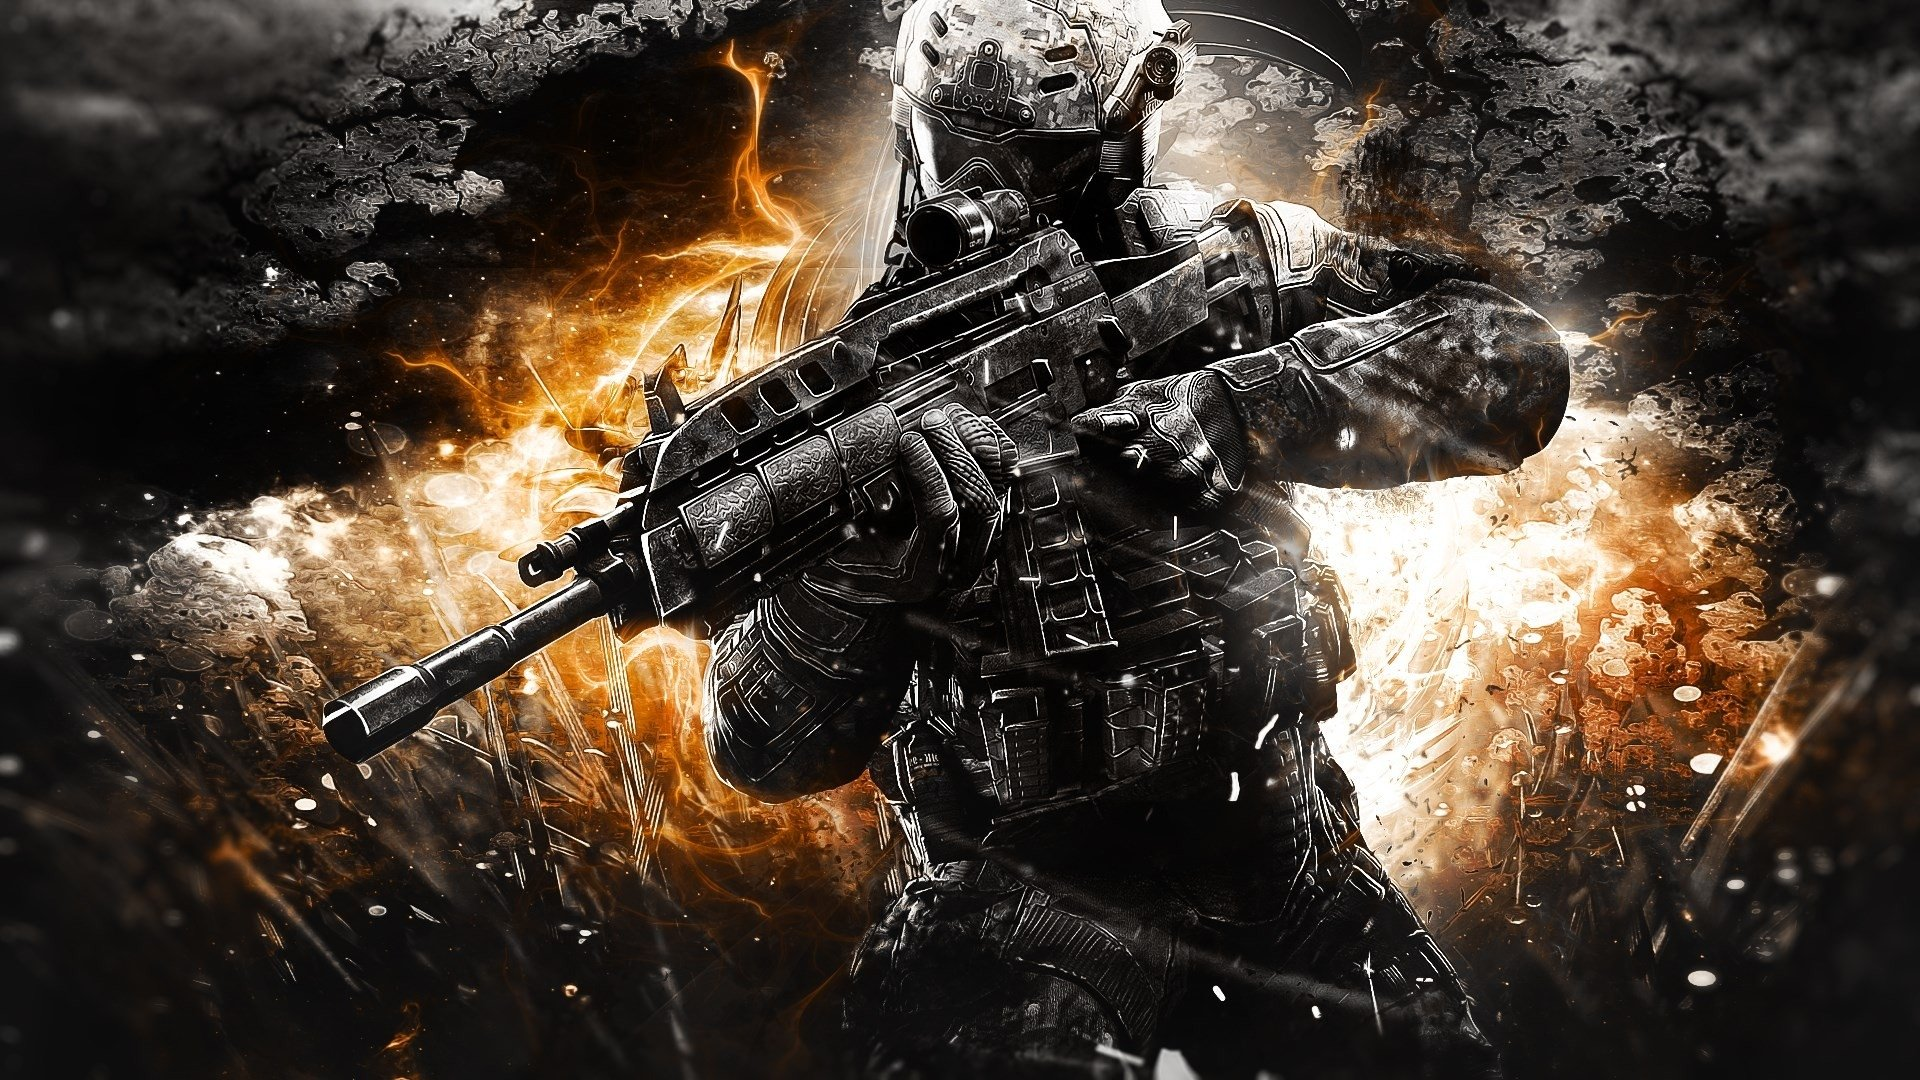 Call Of Duty: Black Ops II Full HD Wallpaper And